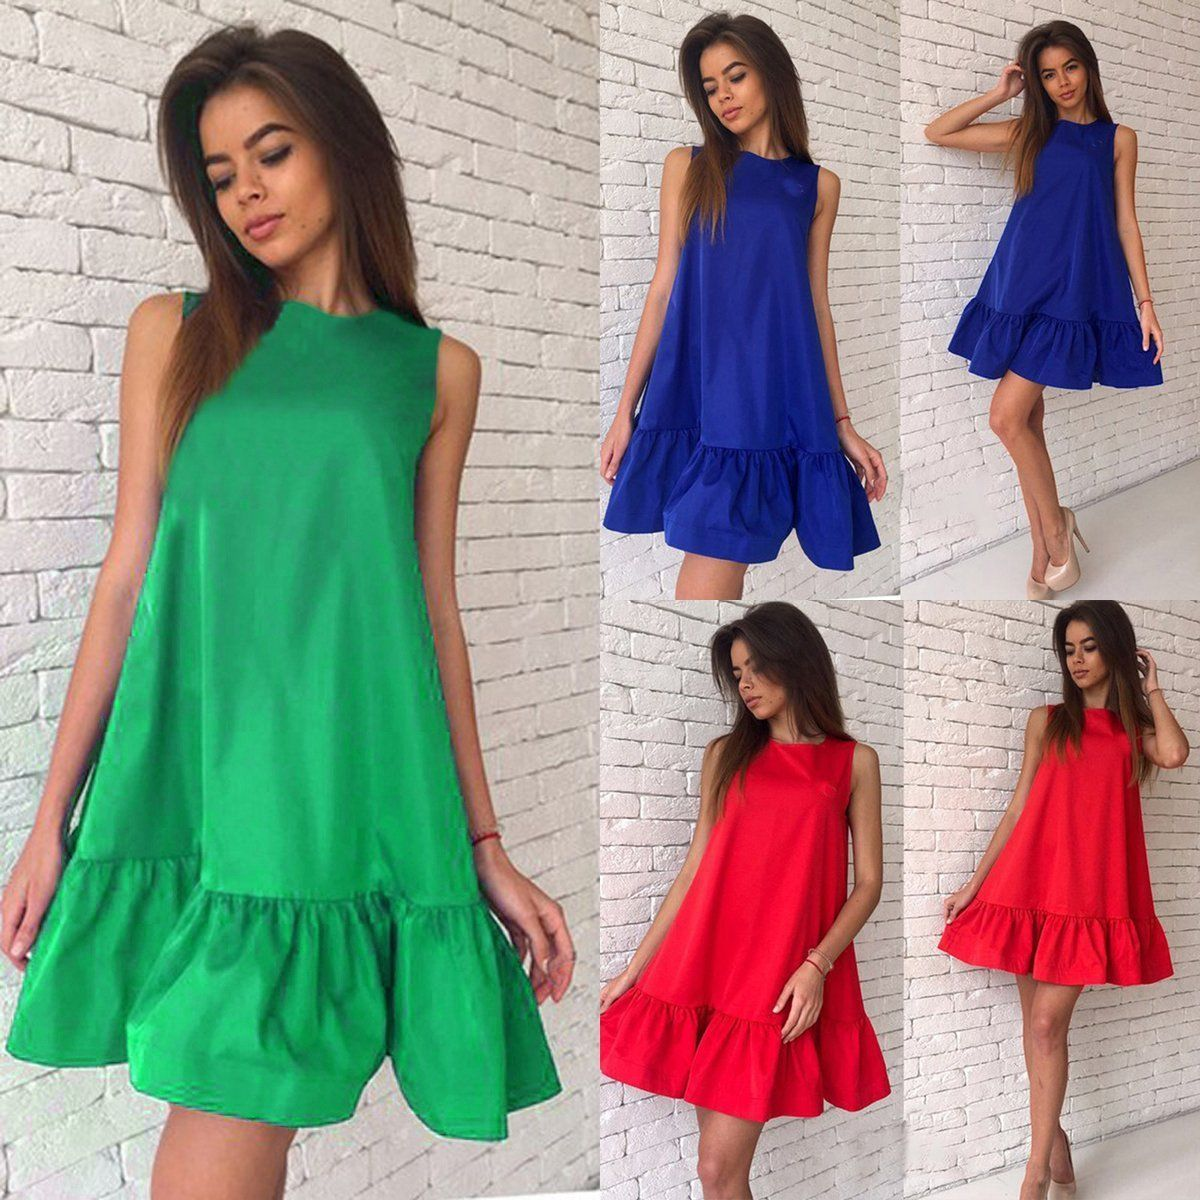 e21668c2cf89 Women Summer Casual Sleeveless Evening Party Beach Dress Short Mini Dress